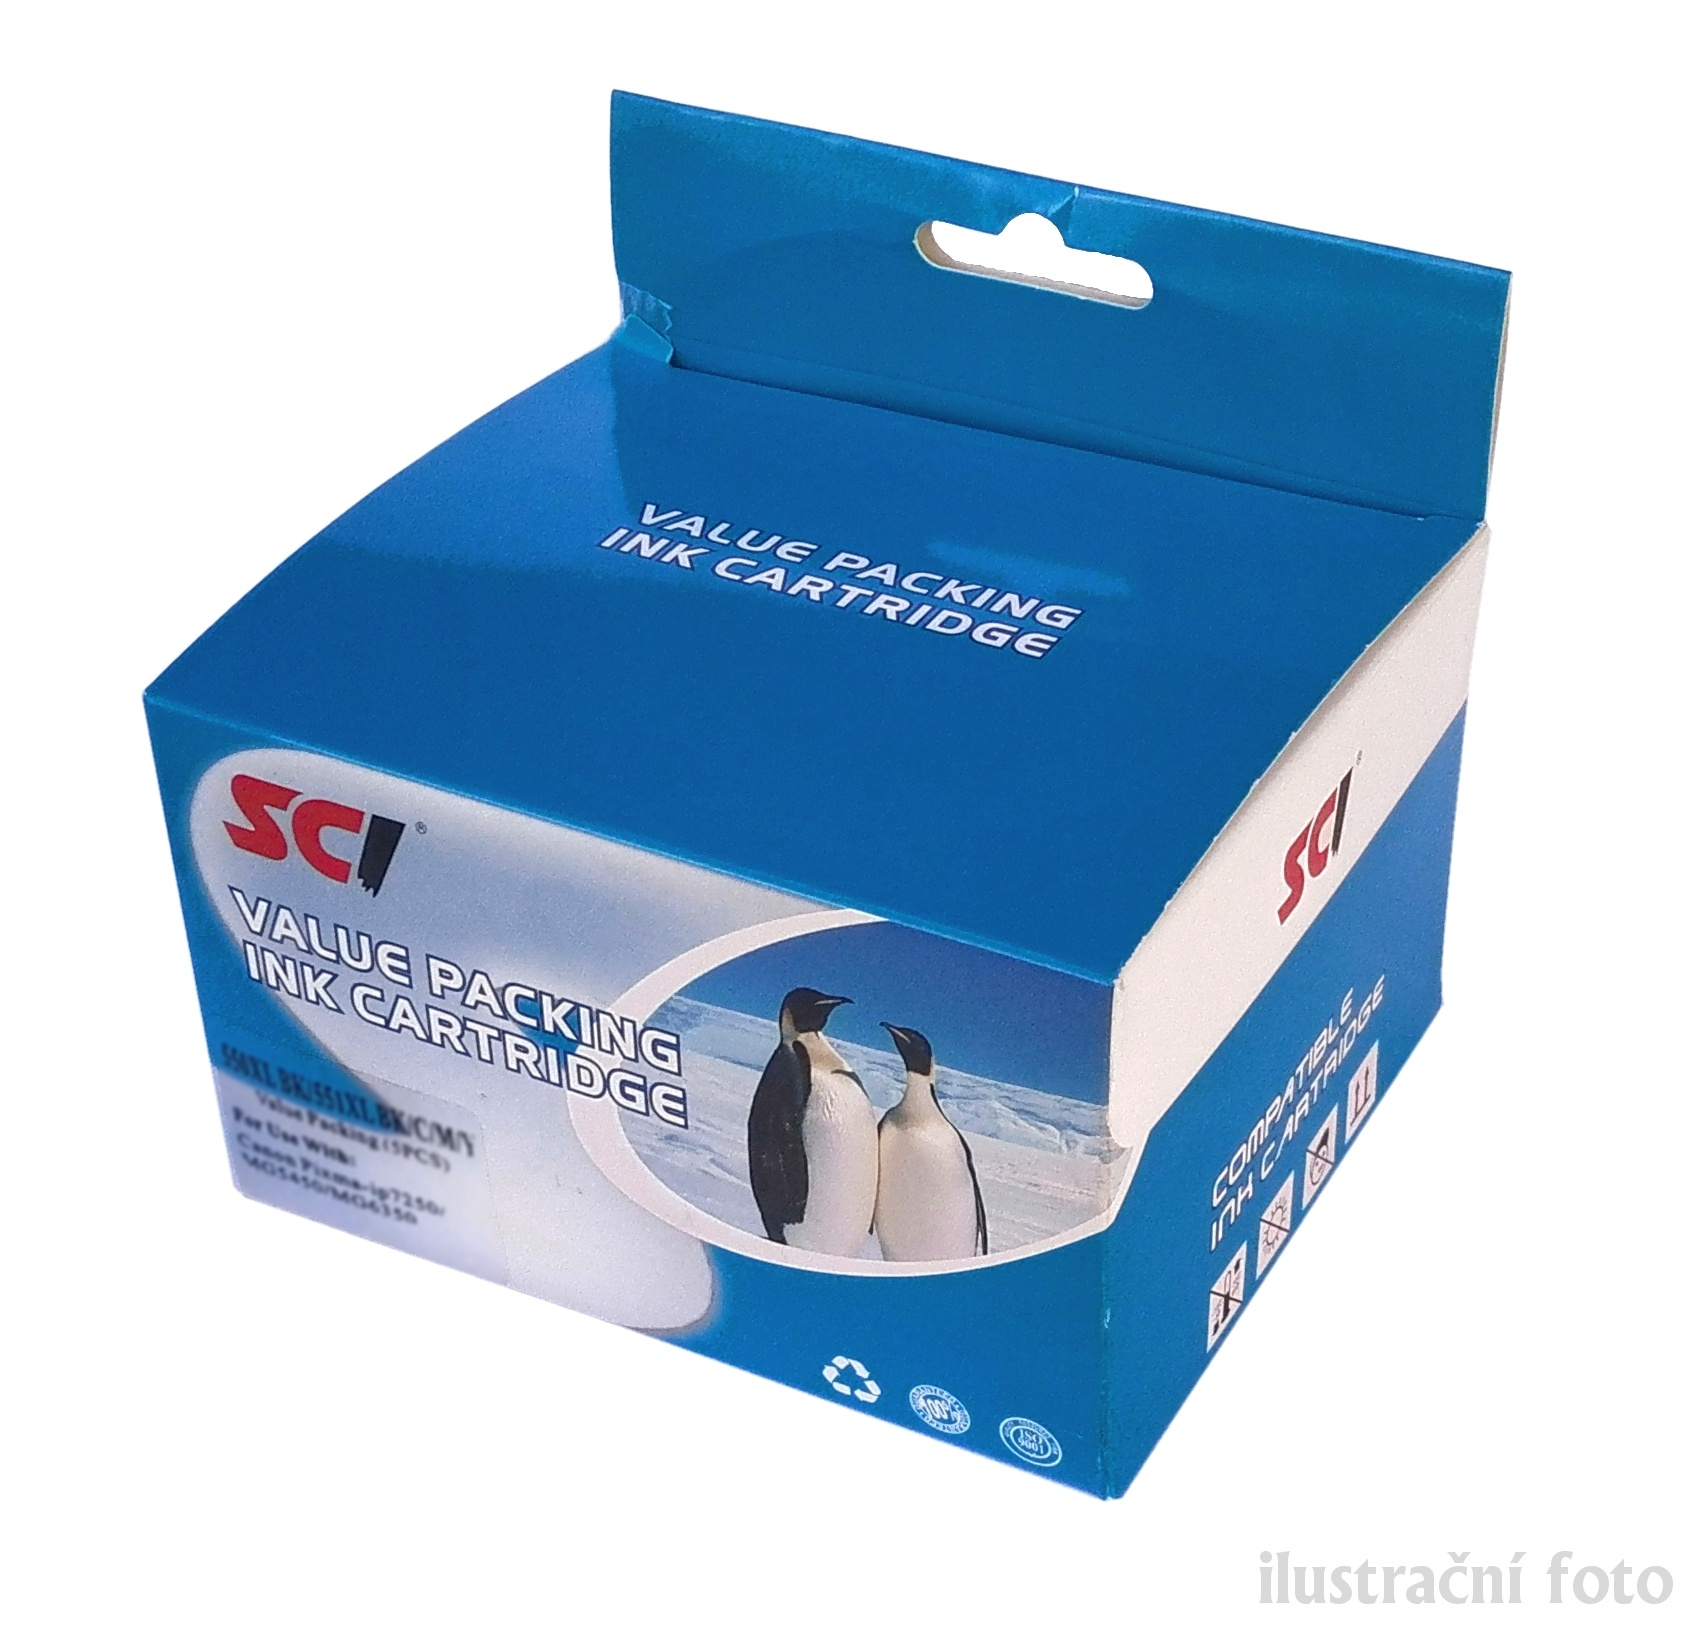 HP 364xl multipack C/M/Y/Bk Compatible Kompatibilní cartridge HP-364xl - sada 4 barev